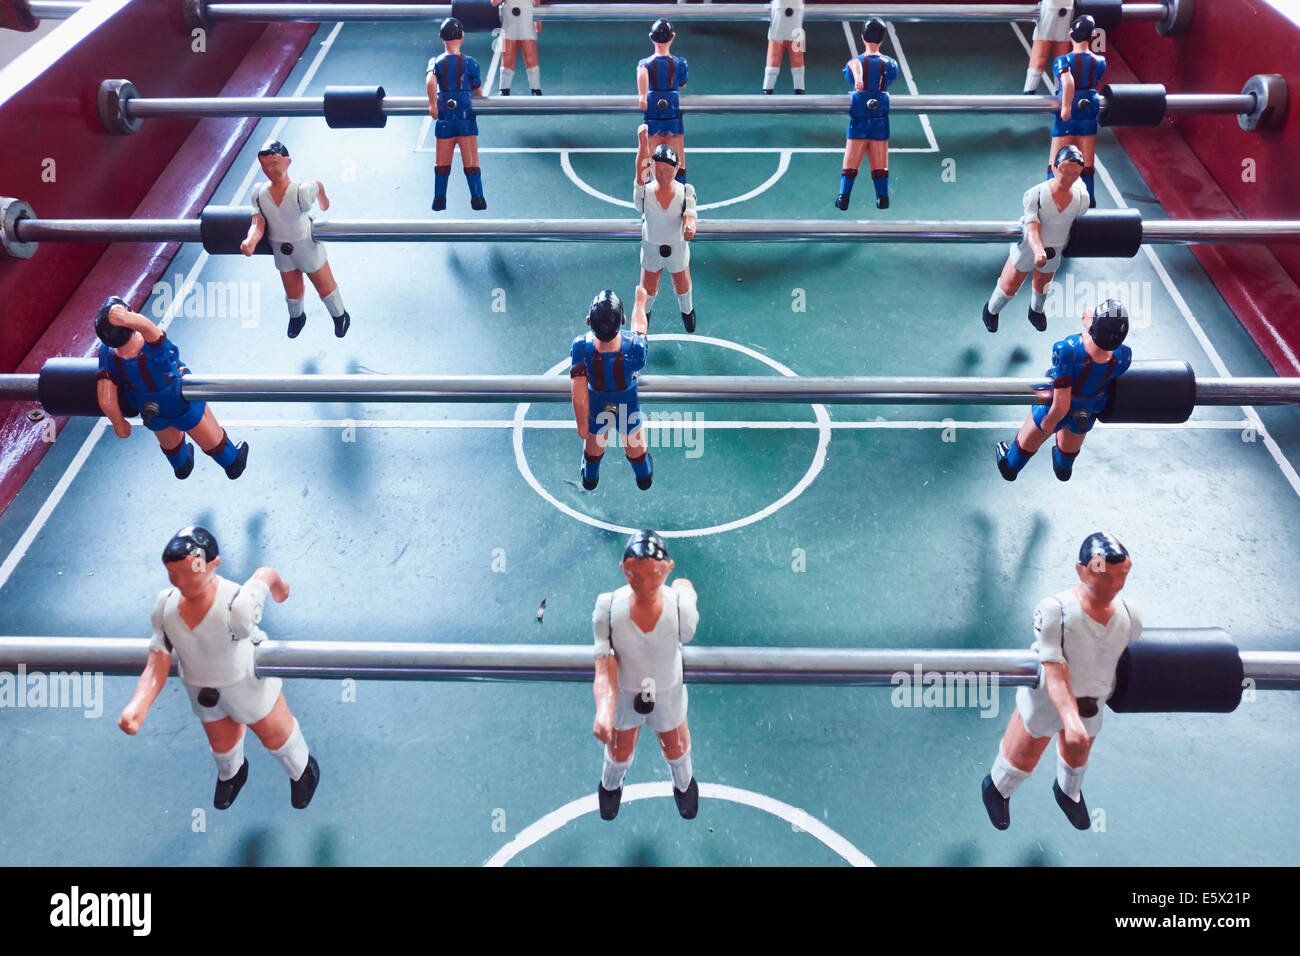 Table football, elevated view - Stock Image